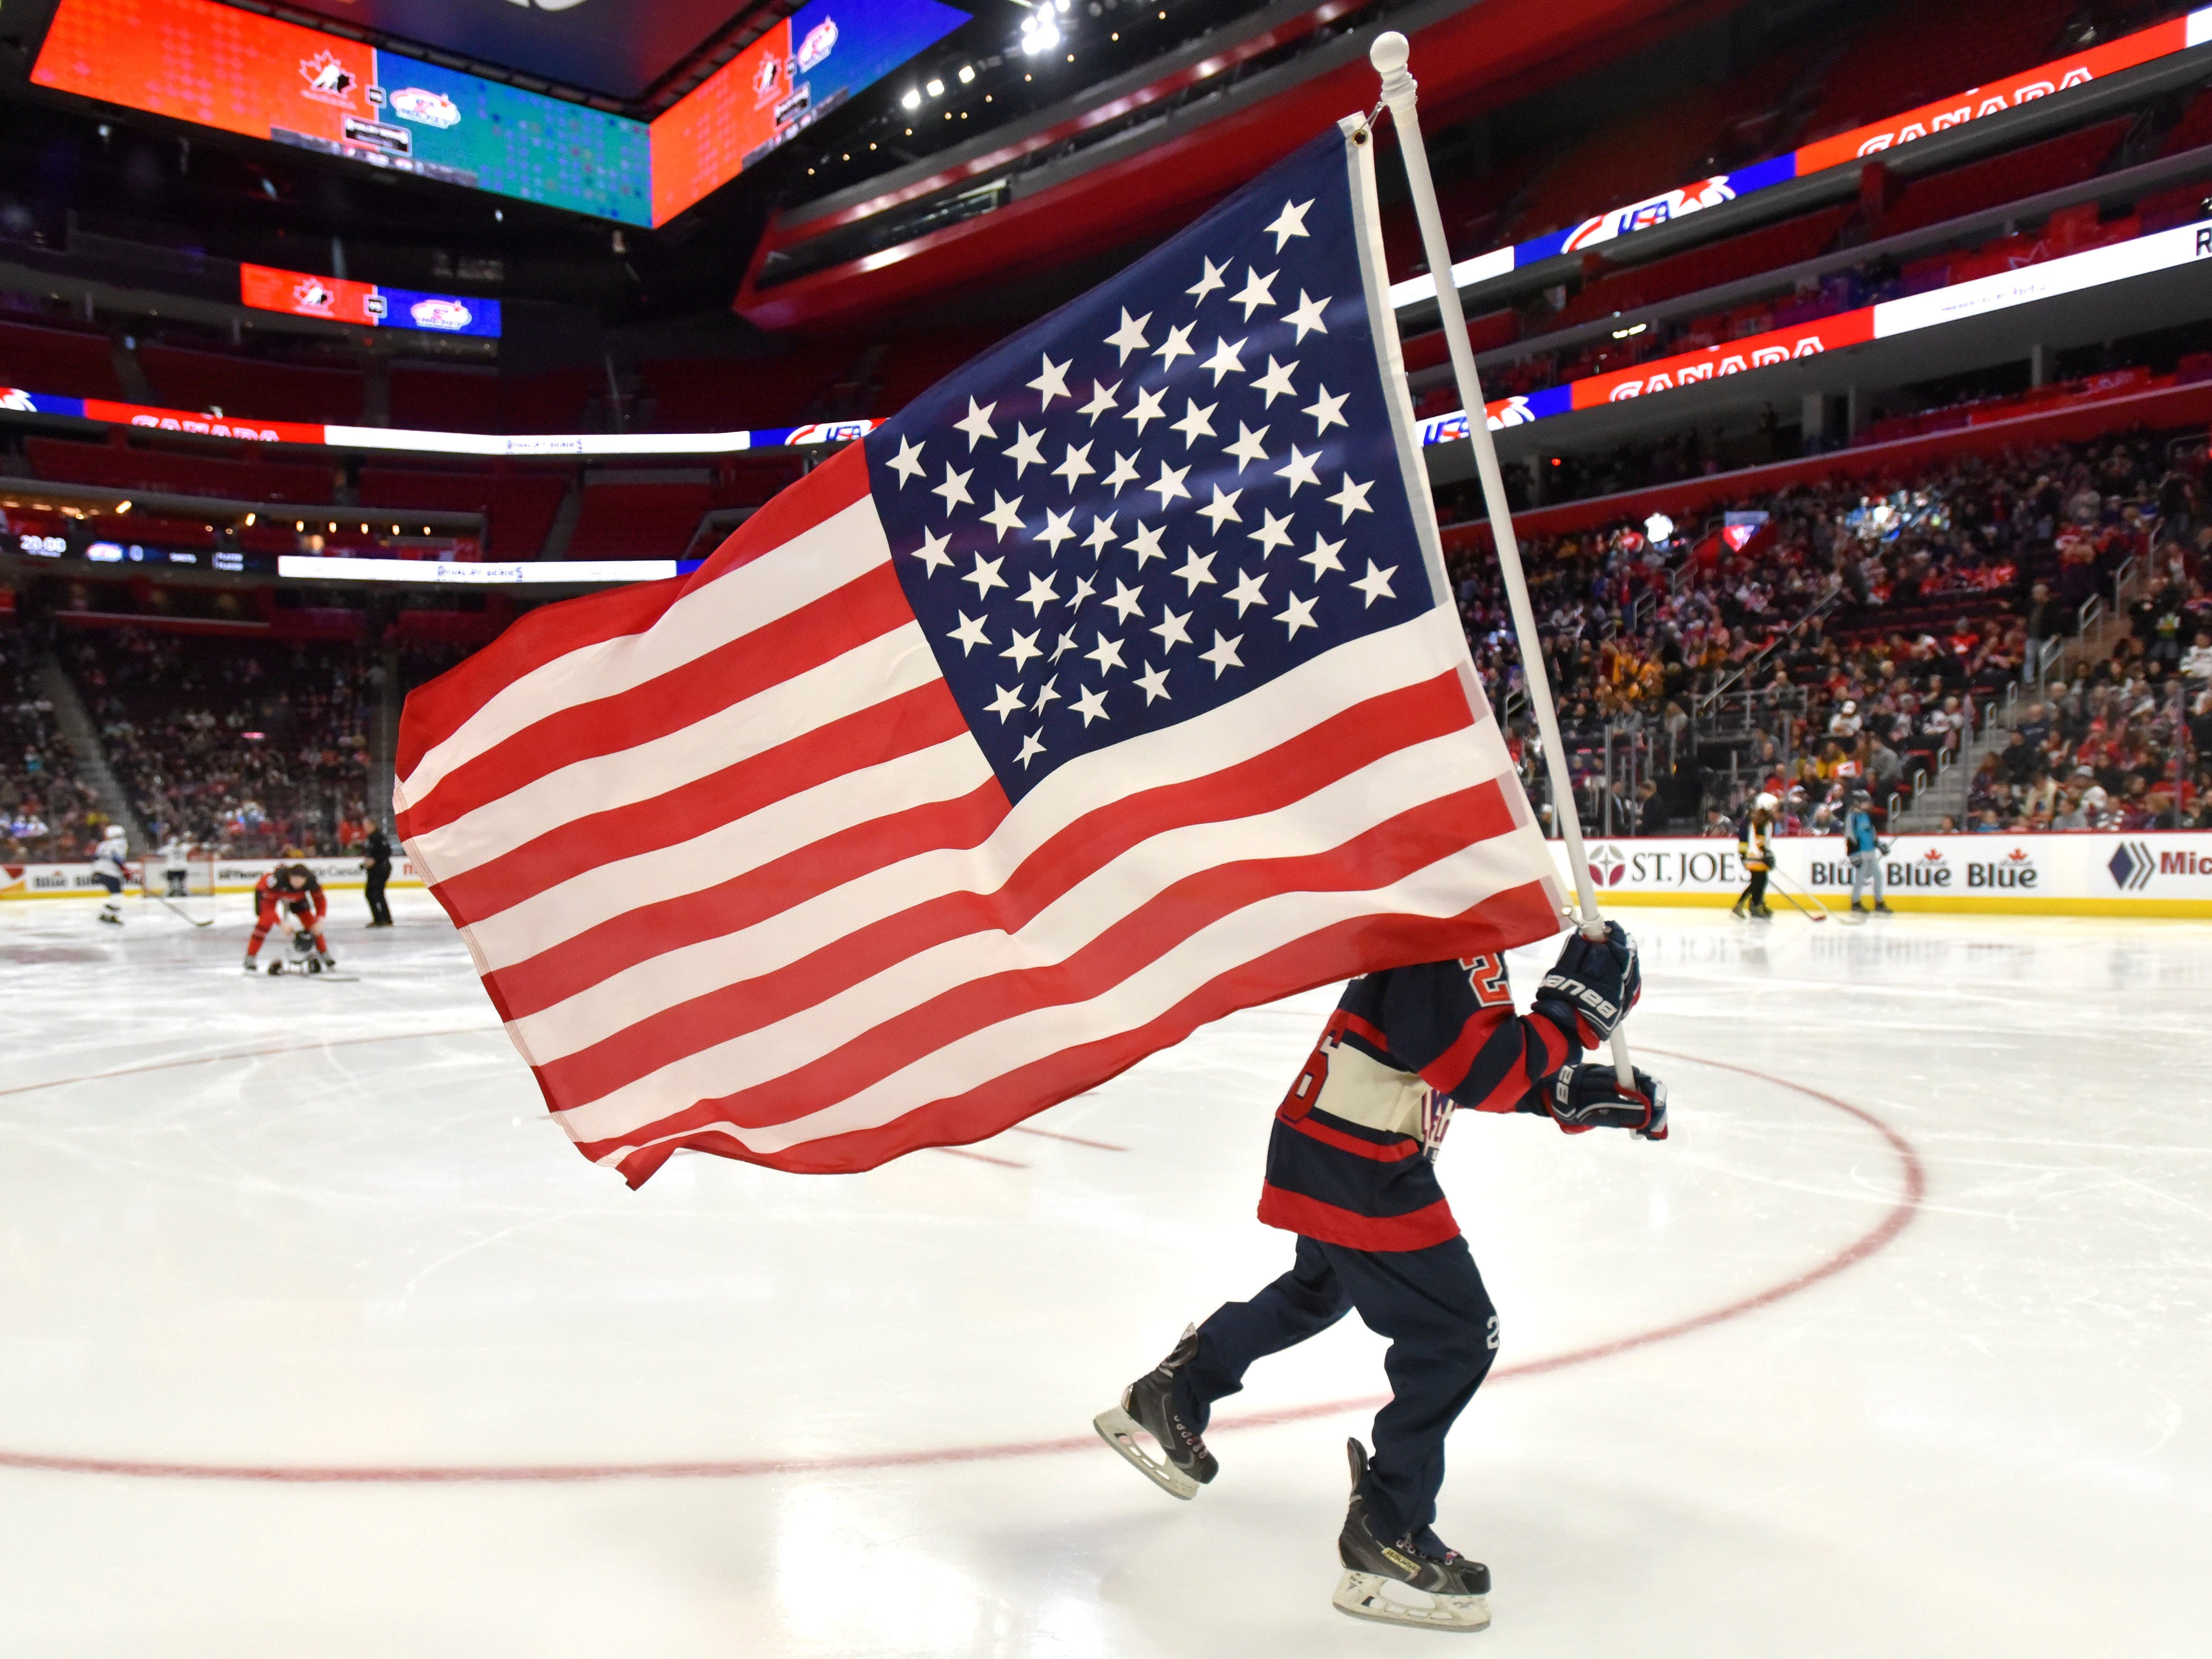 This person skates off the ice with the U.S. flag after Oh Canada and The National Anthem.